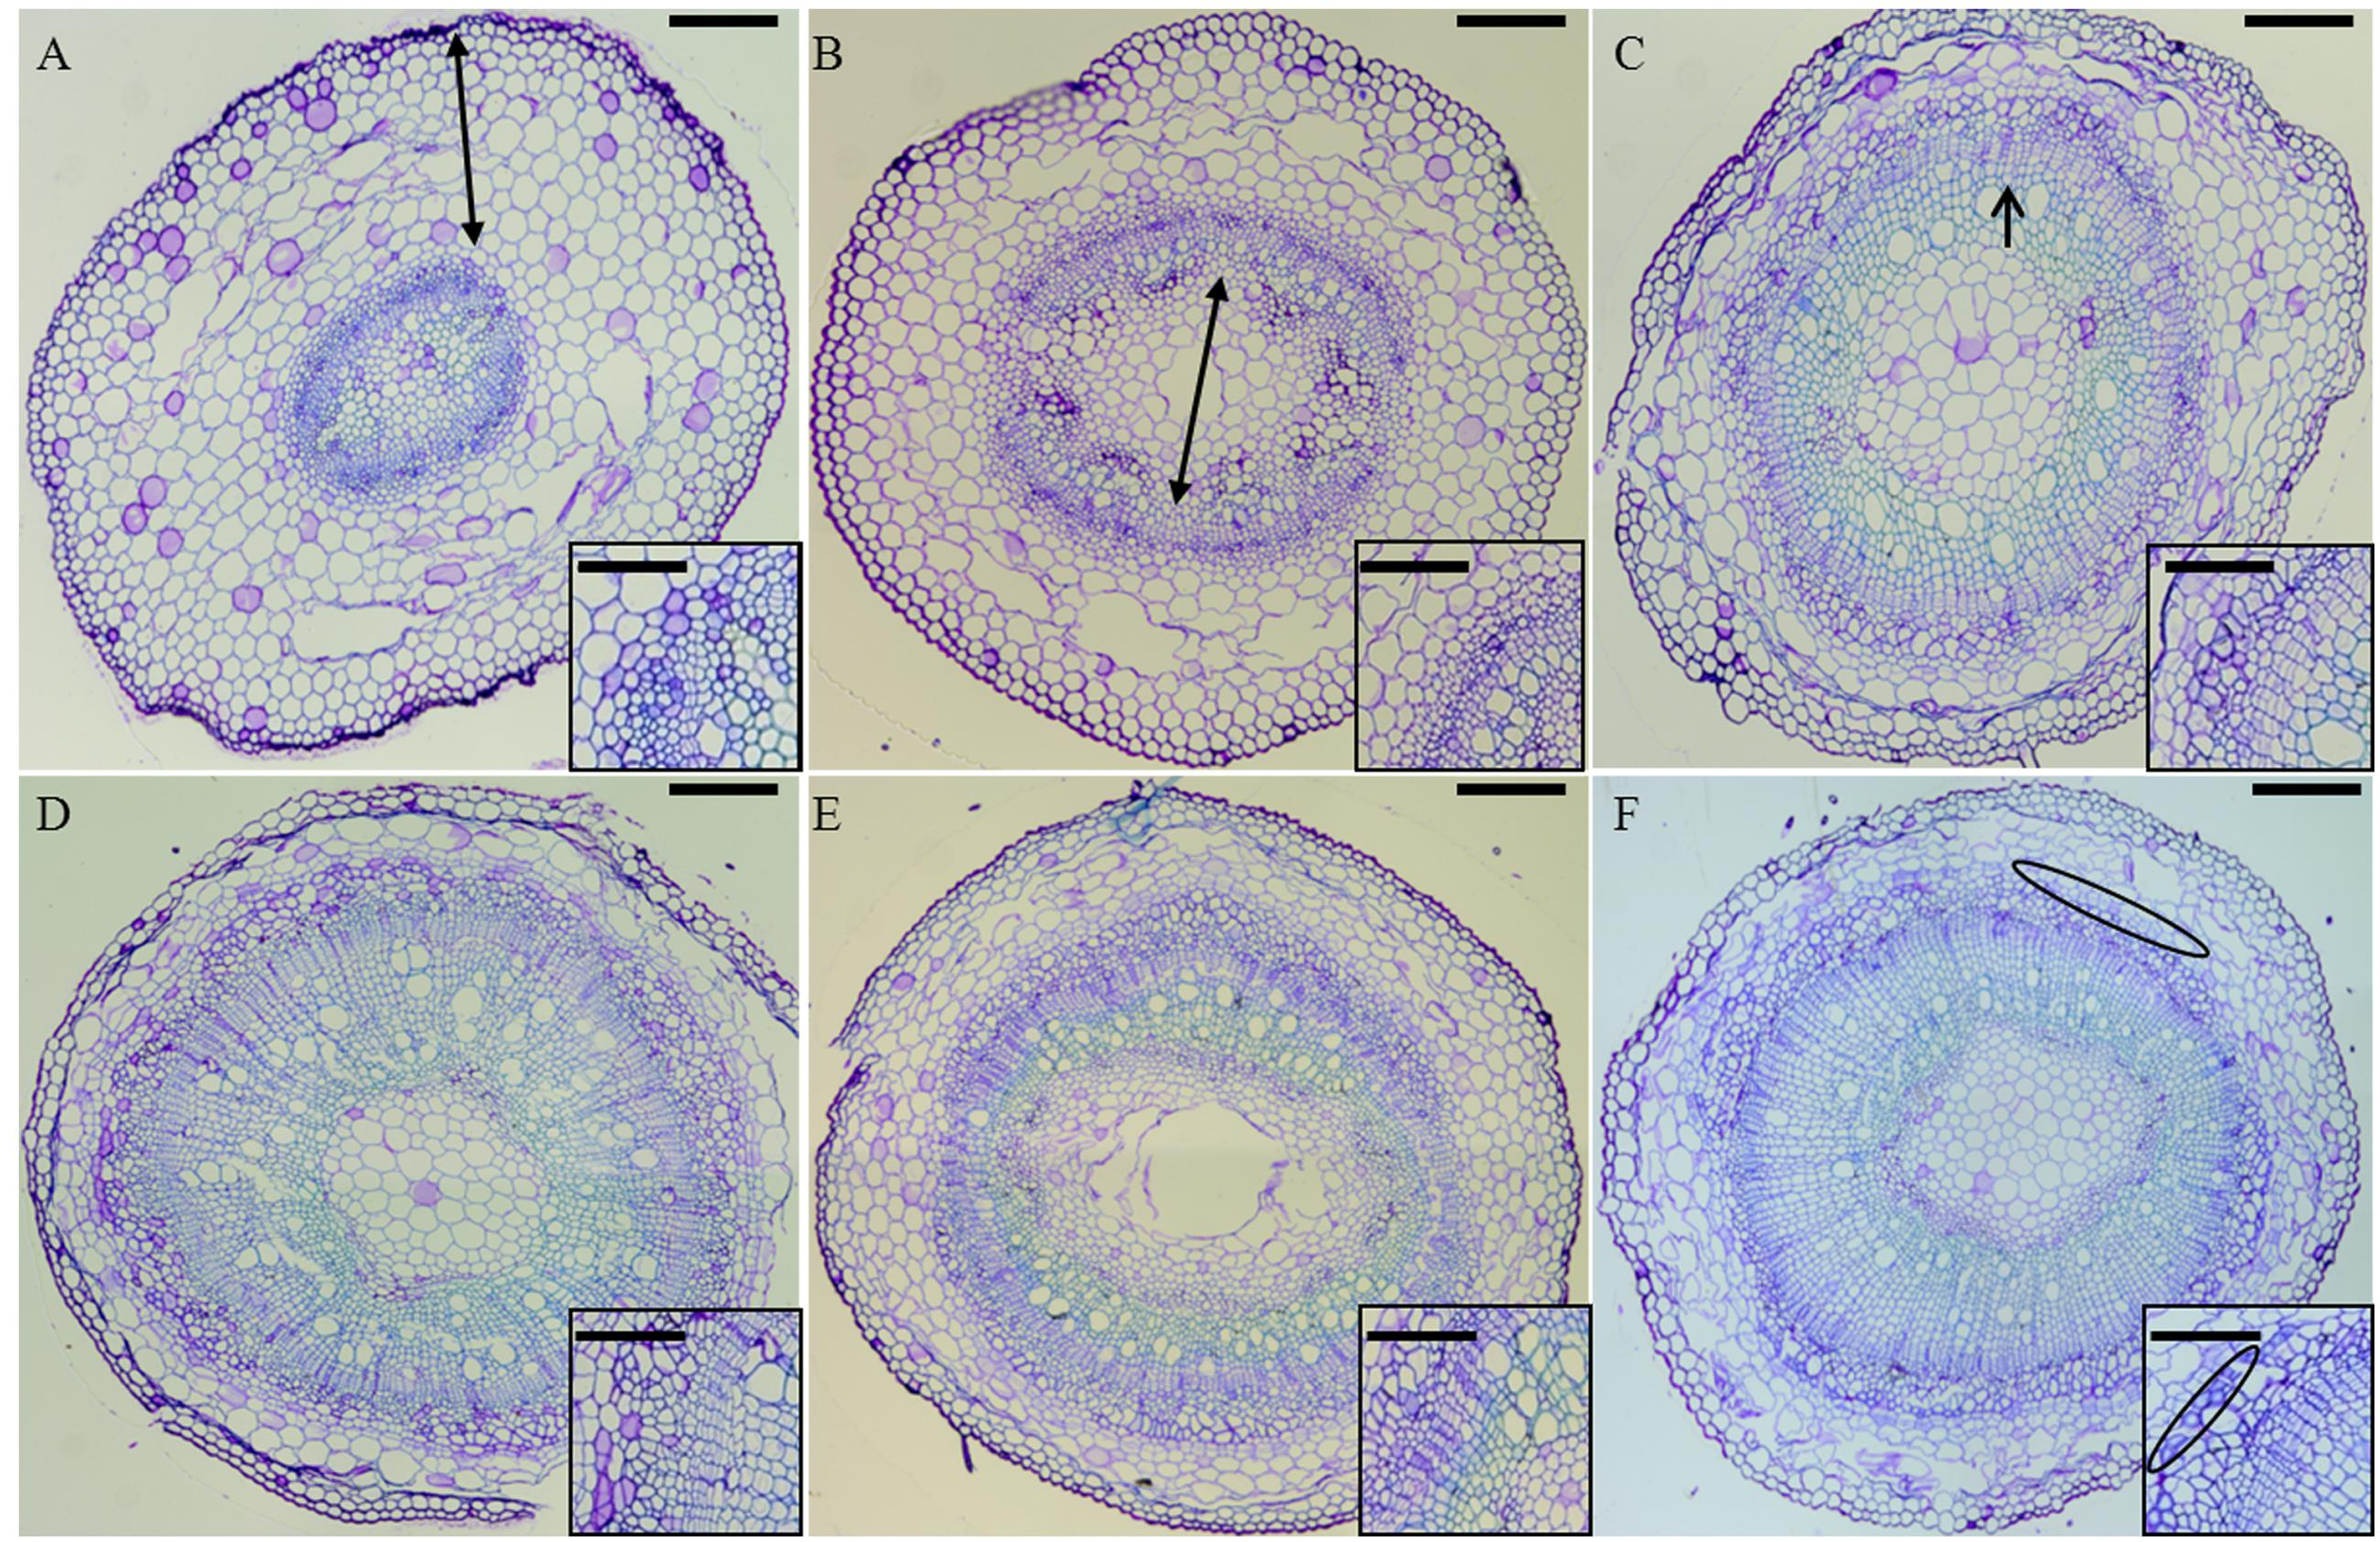 Frontiers | Studying Secondary Growth and Bast Fiber